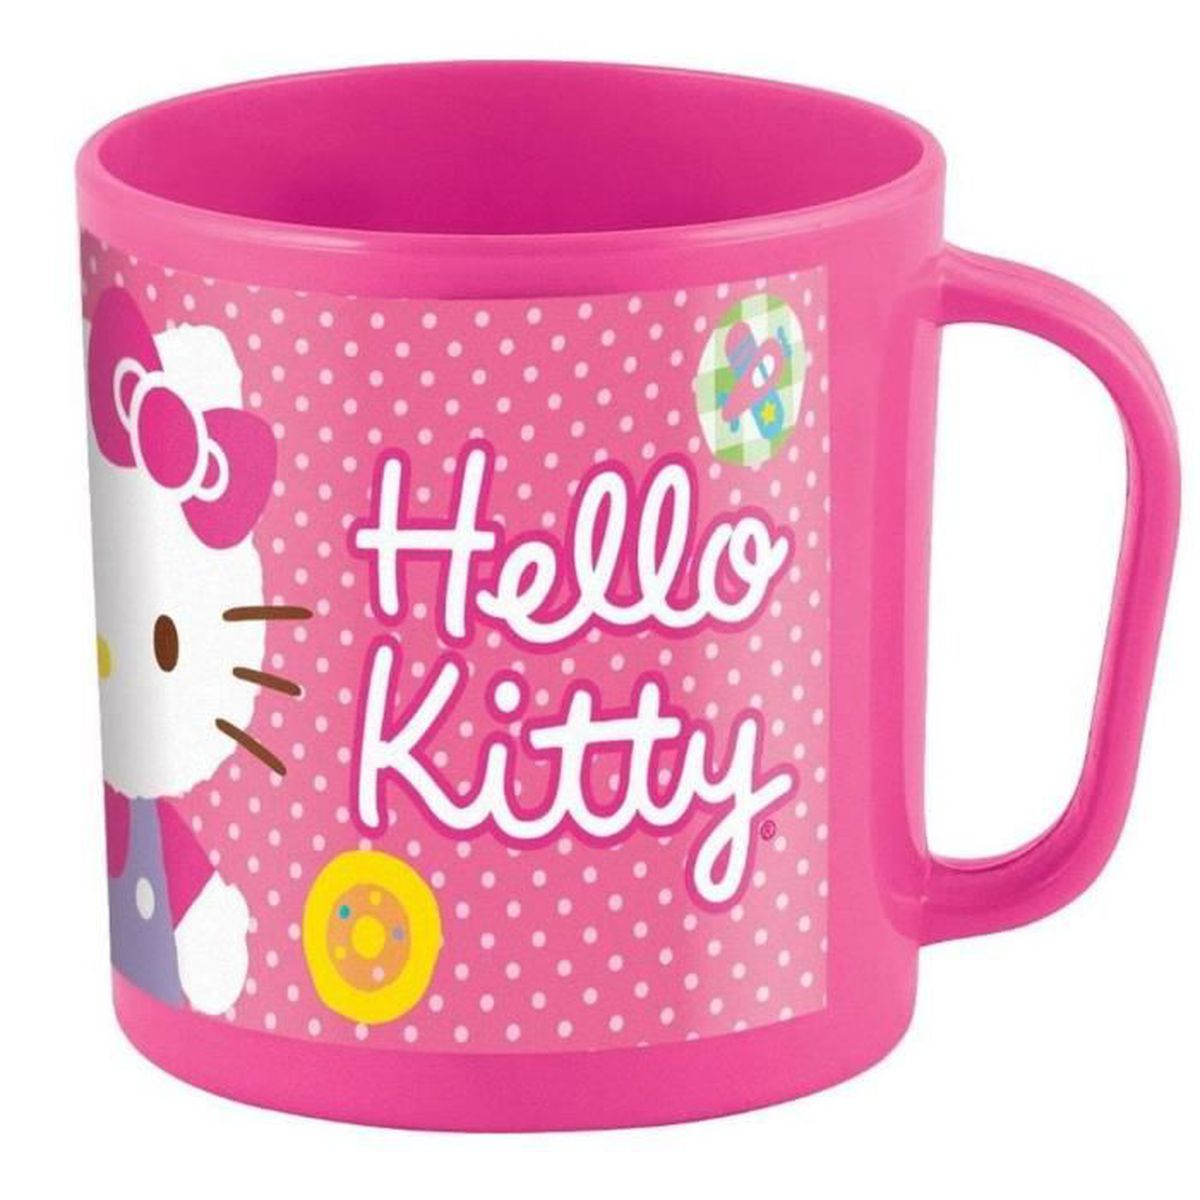 mug hello kitty achat vente mug hello kitty pas cher les soldes sur cdiscount cdiscount. Black Bedroom Furniture Sets. Home Design Ideas